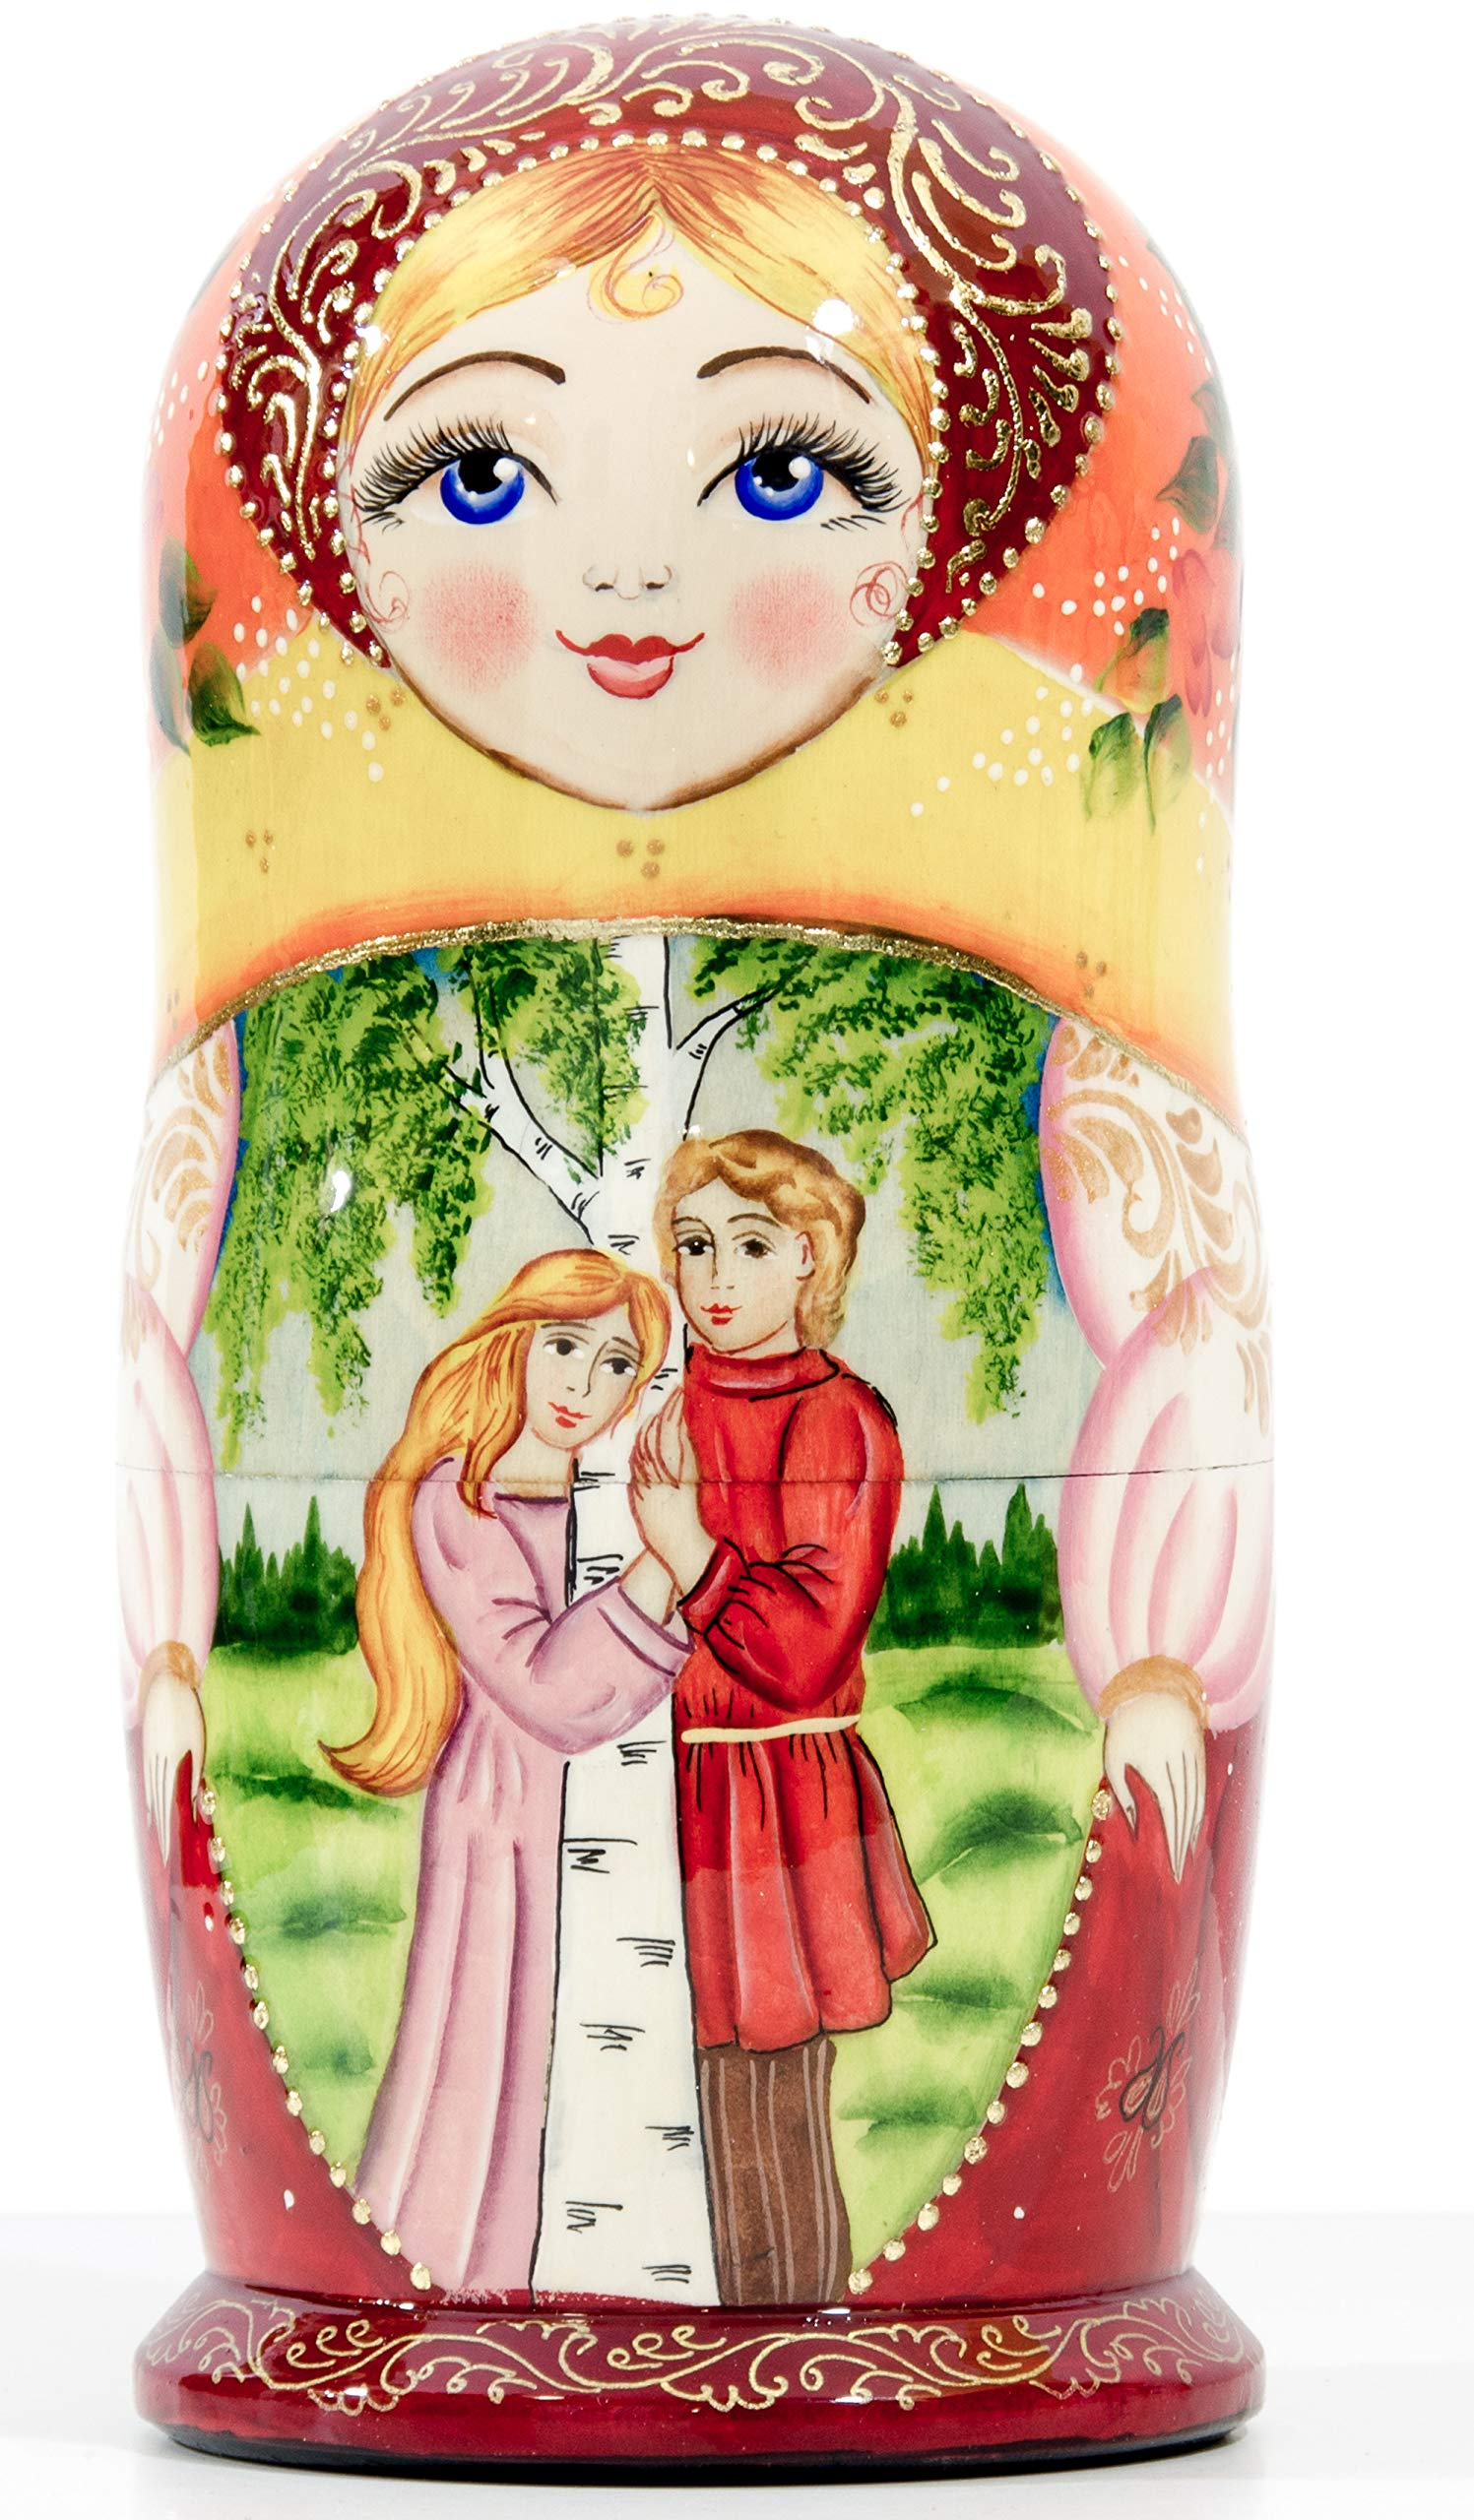 Russian Nesting Doll - Village Scenes - Hand Painted in Russia - 5 Color/Size Variations - Traditional Matryoshka Babushka (6.75``(5 Dolls in 1), Scene L) by craftsfromrussia (Image #6)